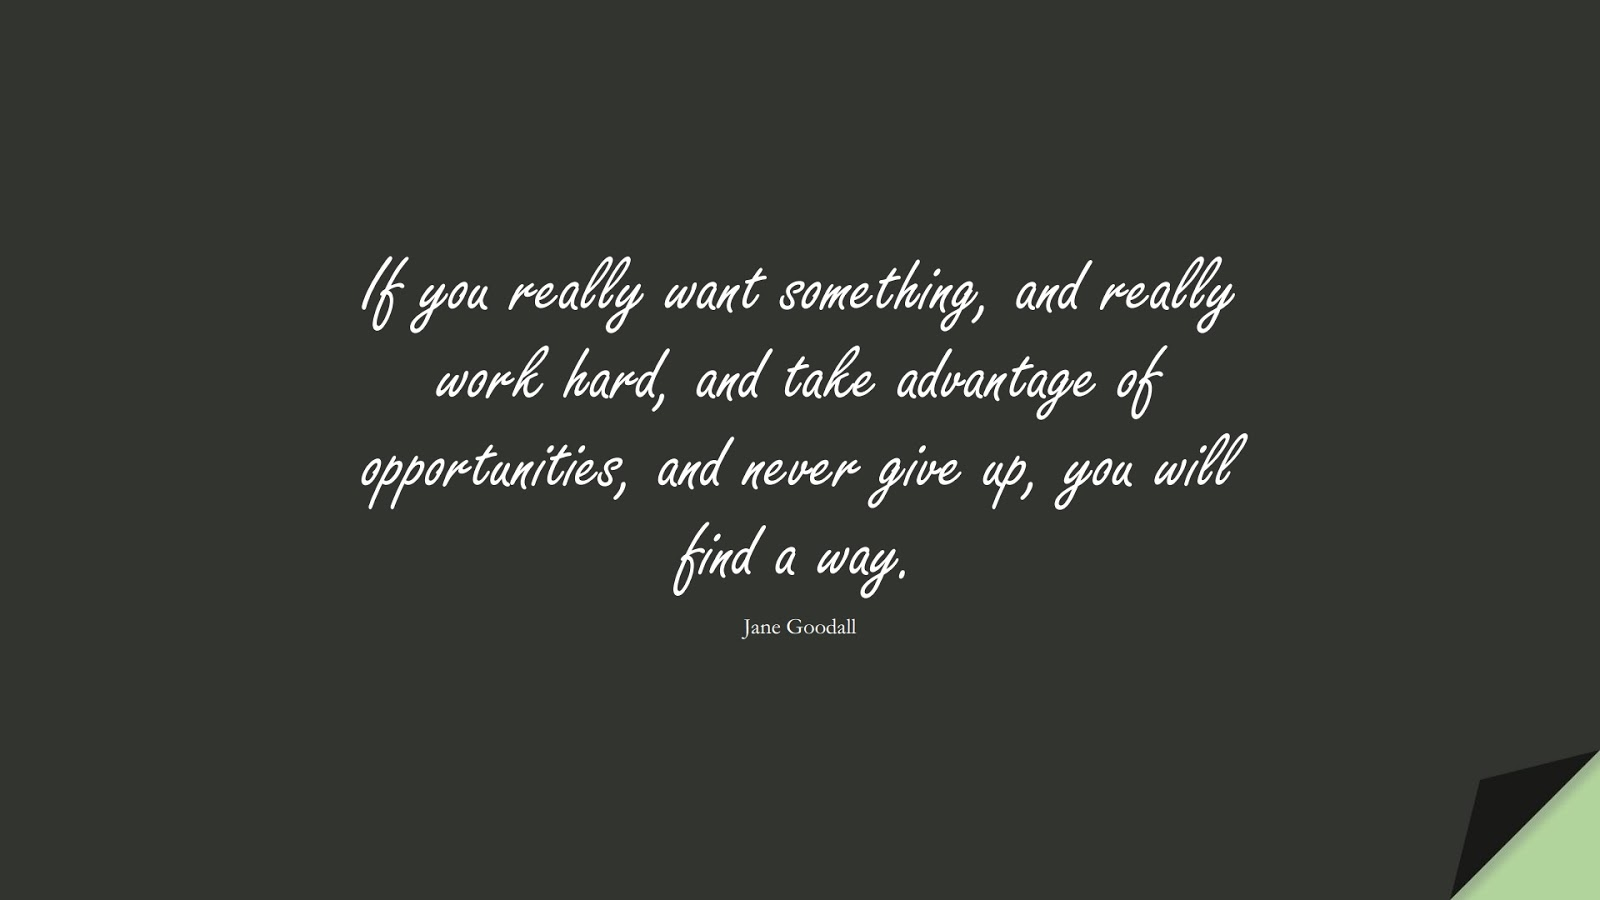 If you really want something, and really work hard, and take advantage of opportunities, and never give up, you will find a way. (Jane Goodall);  #HardWorkQuotes